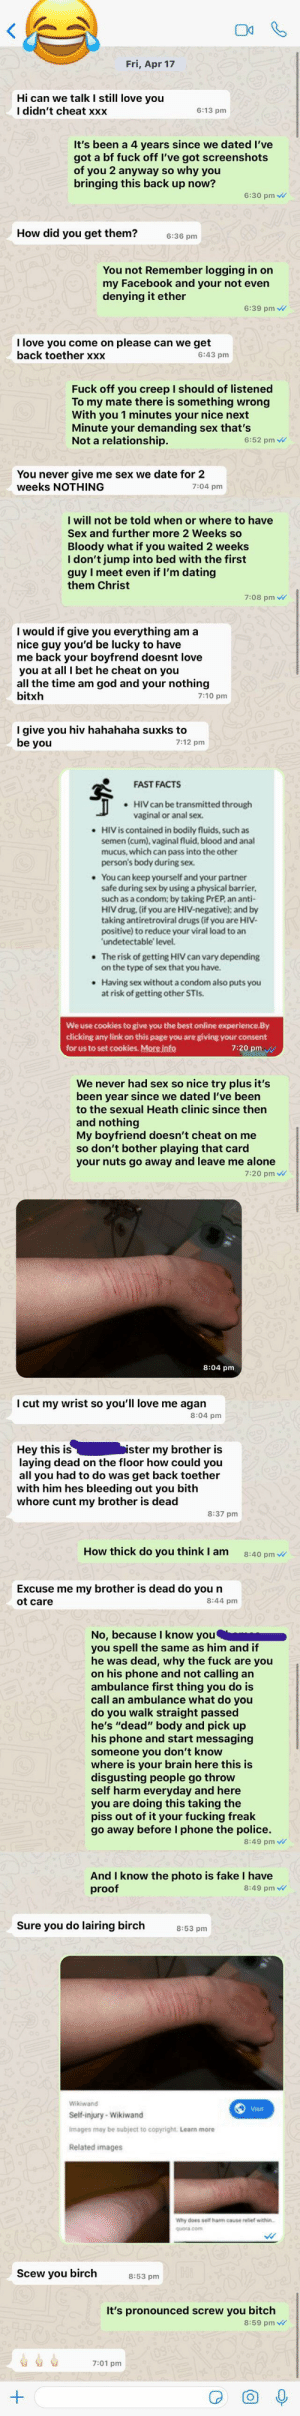 Text is clearly photoshopped and the last message just timetravels two hours back?: Fri, Apr 17  Hi can we talk I still love you  I didn't cheat xxx  6:13 pm  It's been a 4 years since we dated l've  got a bf fuck off I've got screenshots  of you 2 anyway so why you  bringing this back up now?  6:30 pm  How did you get them?  6:36 pm  You not Remember logging in on  my Facebook and your not even  denying it ether  6:39 pm  I love you come on please can we get  back toether xxx  6:43 pm  Fuck off you creep I should of listened  To my mate there is something wrong  With you 1 minutes your nice next  Minute your demanding sex that's  Not a relationship.  6:52 pm w  You never give me sex we date for 2  weeks NOTHING  7:04 pm  I will not be told when or where to have  Sex and further more 2 Weeks so  Bloody what if you waited 2 weeks  I don't jump into bed with the first  guy I meet even if I'm dating  them Christ  7:08 pm W  I would if give you everything am a  nice guy you'd be lucky to have  me back your boyfrend doesnt love  you at all I bet he cheat on you  all the time am god and your nothing  bitxh  7:10 pm  I give you hiv hahahaha suxks to  be you  7:12 pm  FAST FACTS  • HIV can be transmitted through  vaginal or anal sex.  • HIVIS contained in bodily fluids, such as  semen (cum), vaginal fluid, blood and anal  mucus, which can pass into the other  person's body during sex.  You can keep yourself and your partner  safe during sex by using a physical barrier,  such as a condom; by taking PREP, an anti-  HIV drug. (if you are HIV-negative); and by  taking antiretroviral drugs (if you are HIV-  positive) to reduce your viral load to an  'undetectable' level.  • The risk of getting HIV can vary depending  on the type of sex that you have.  Having sex without a condom also puts you  at risk of getting other STIS.  We use cookies to give you the best online experience.By  clicking any link on this page you are giving your consent  for us to set cookies. More info  7:20